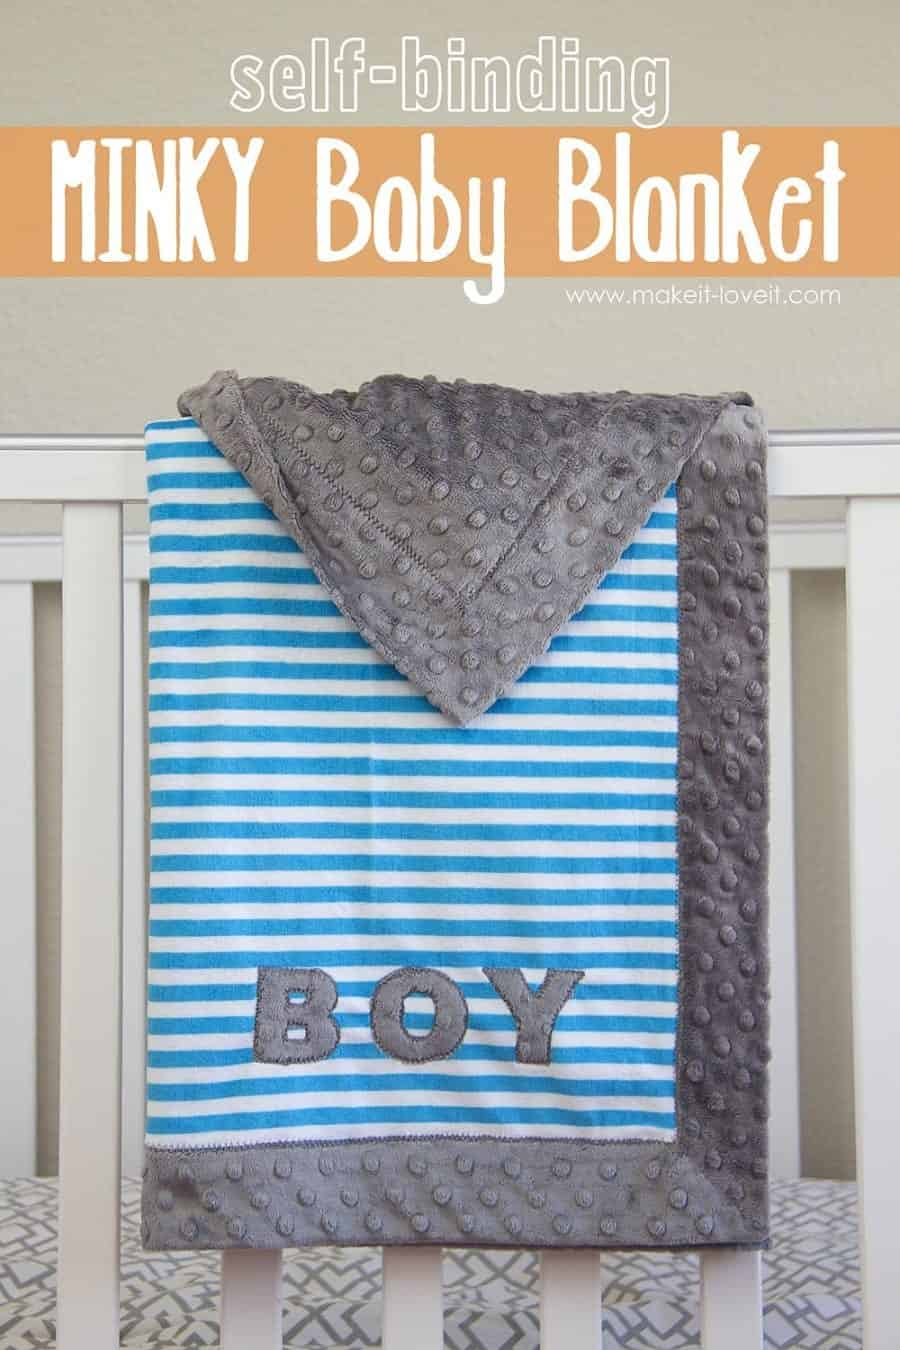 self-binding-minky-baby-blanket-1